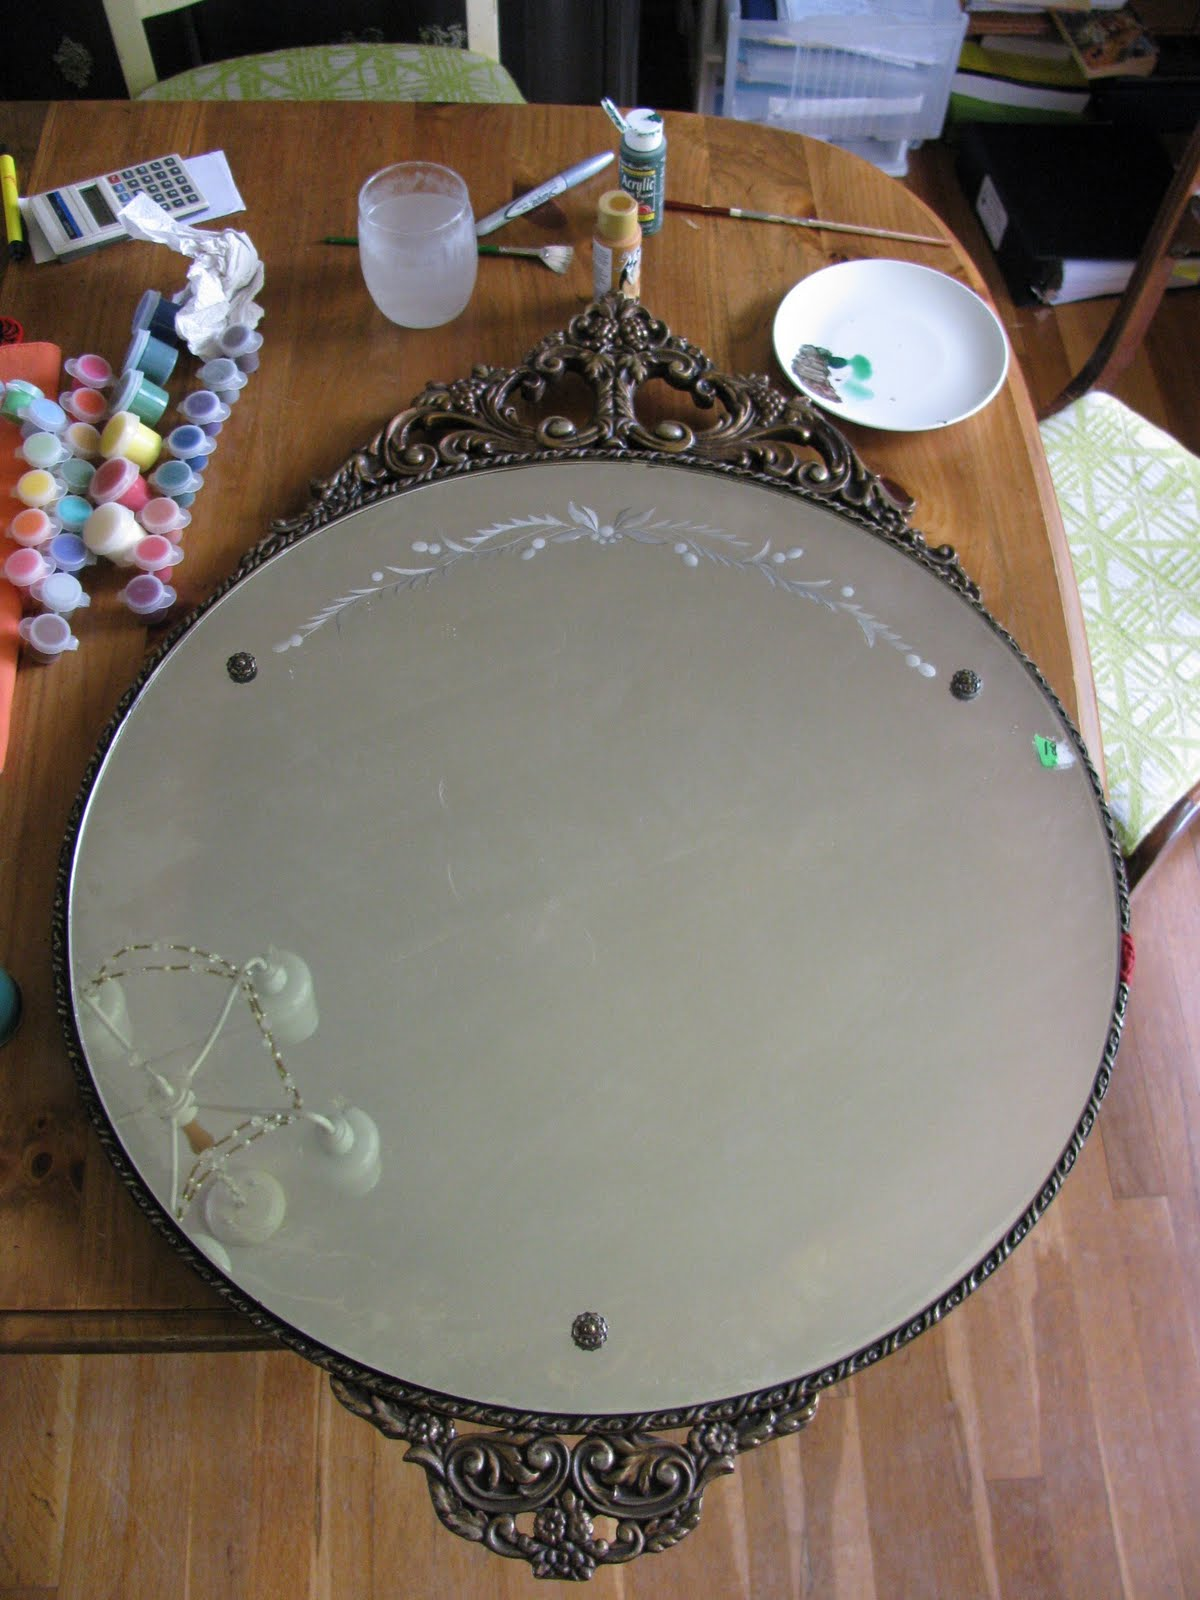 How To Repair Old Plaster Frames